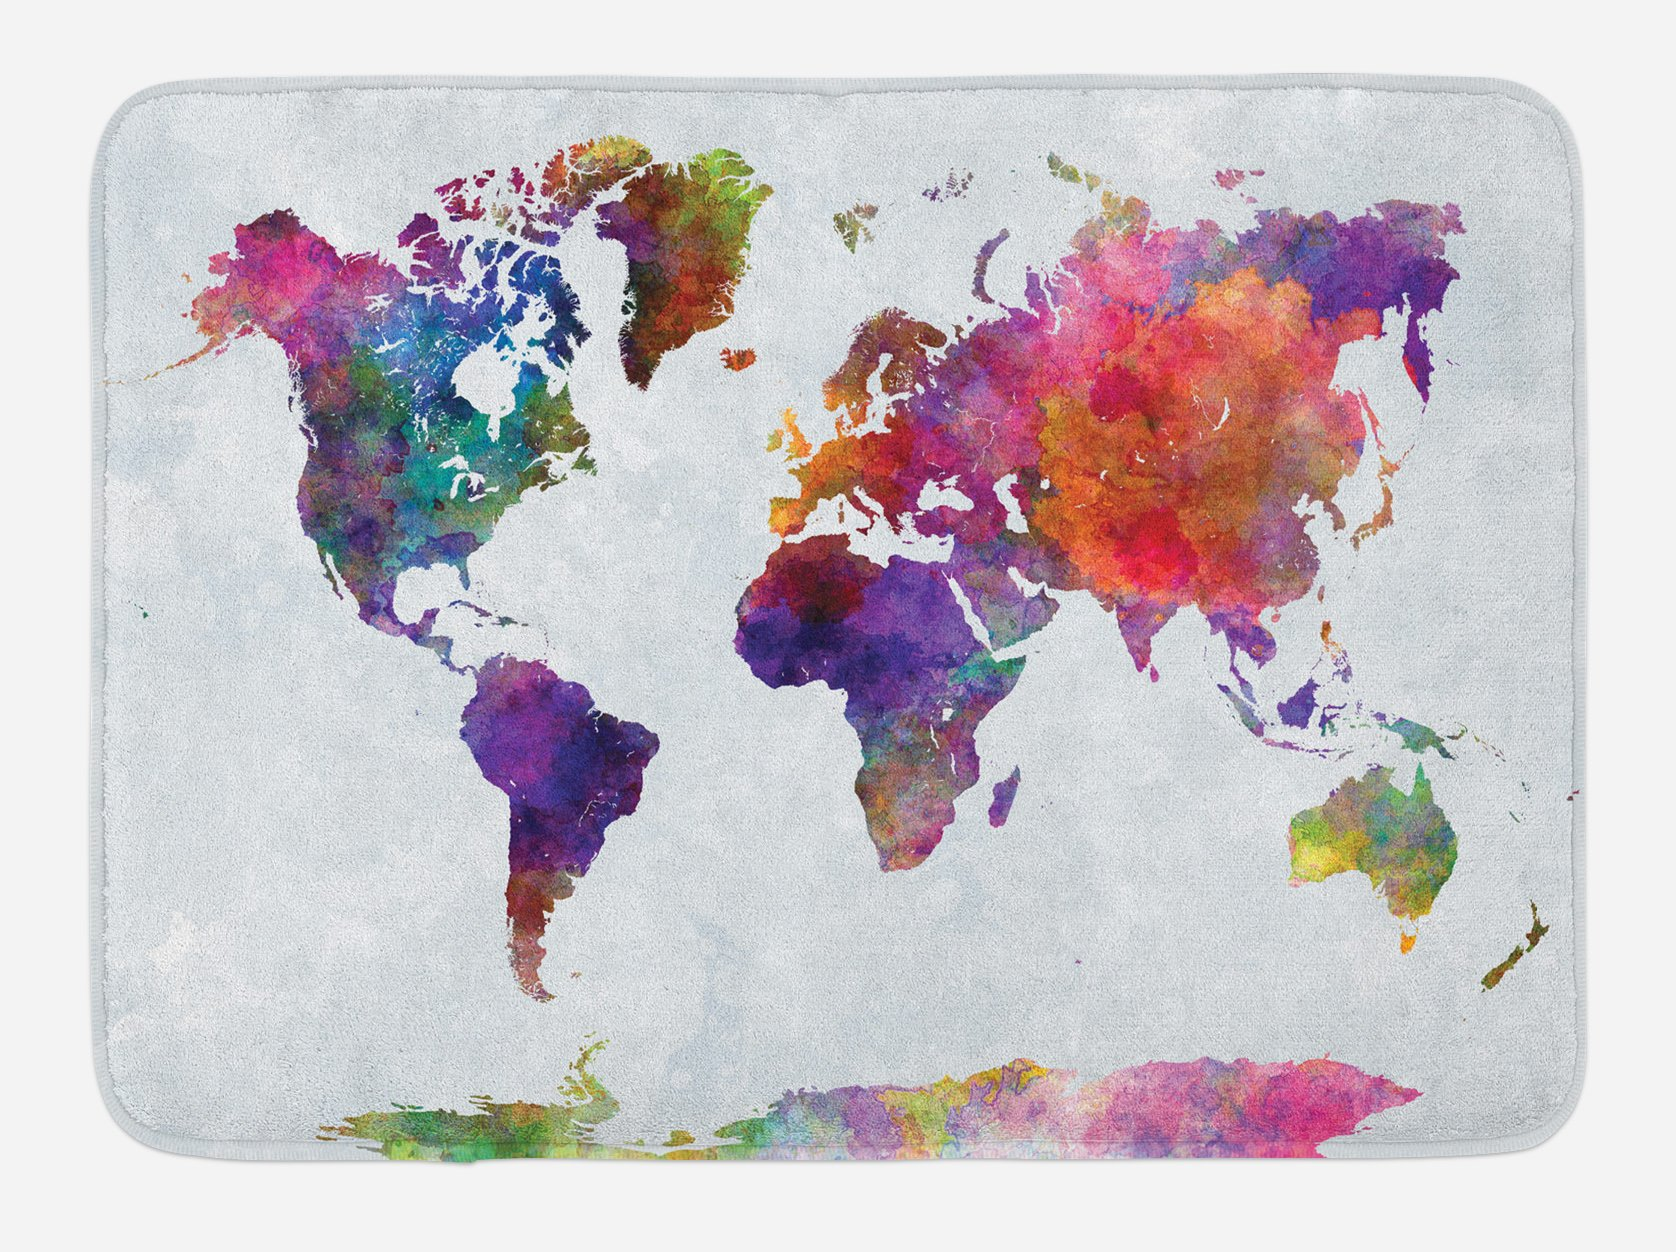 Ambesonne Watercolor Bath Mat, Multicolored Hand Drawn World Map Asia Europe Africa America Geography Print, Plush Bathroom Decor Mat with Non Slip Backing, 29.5 W X 17.5 W Inches, Multicolor